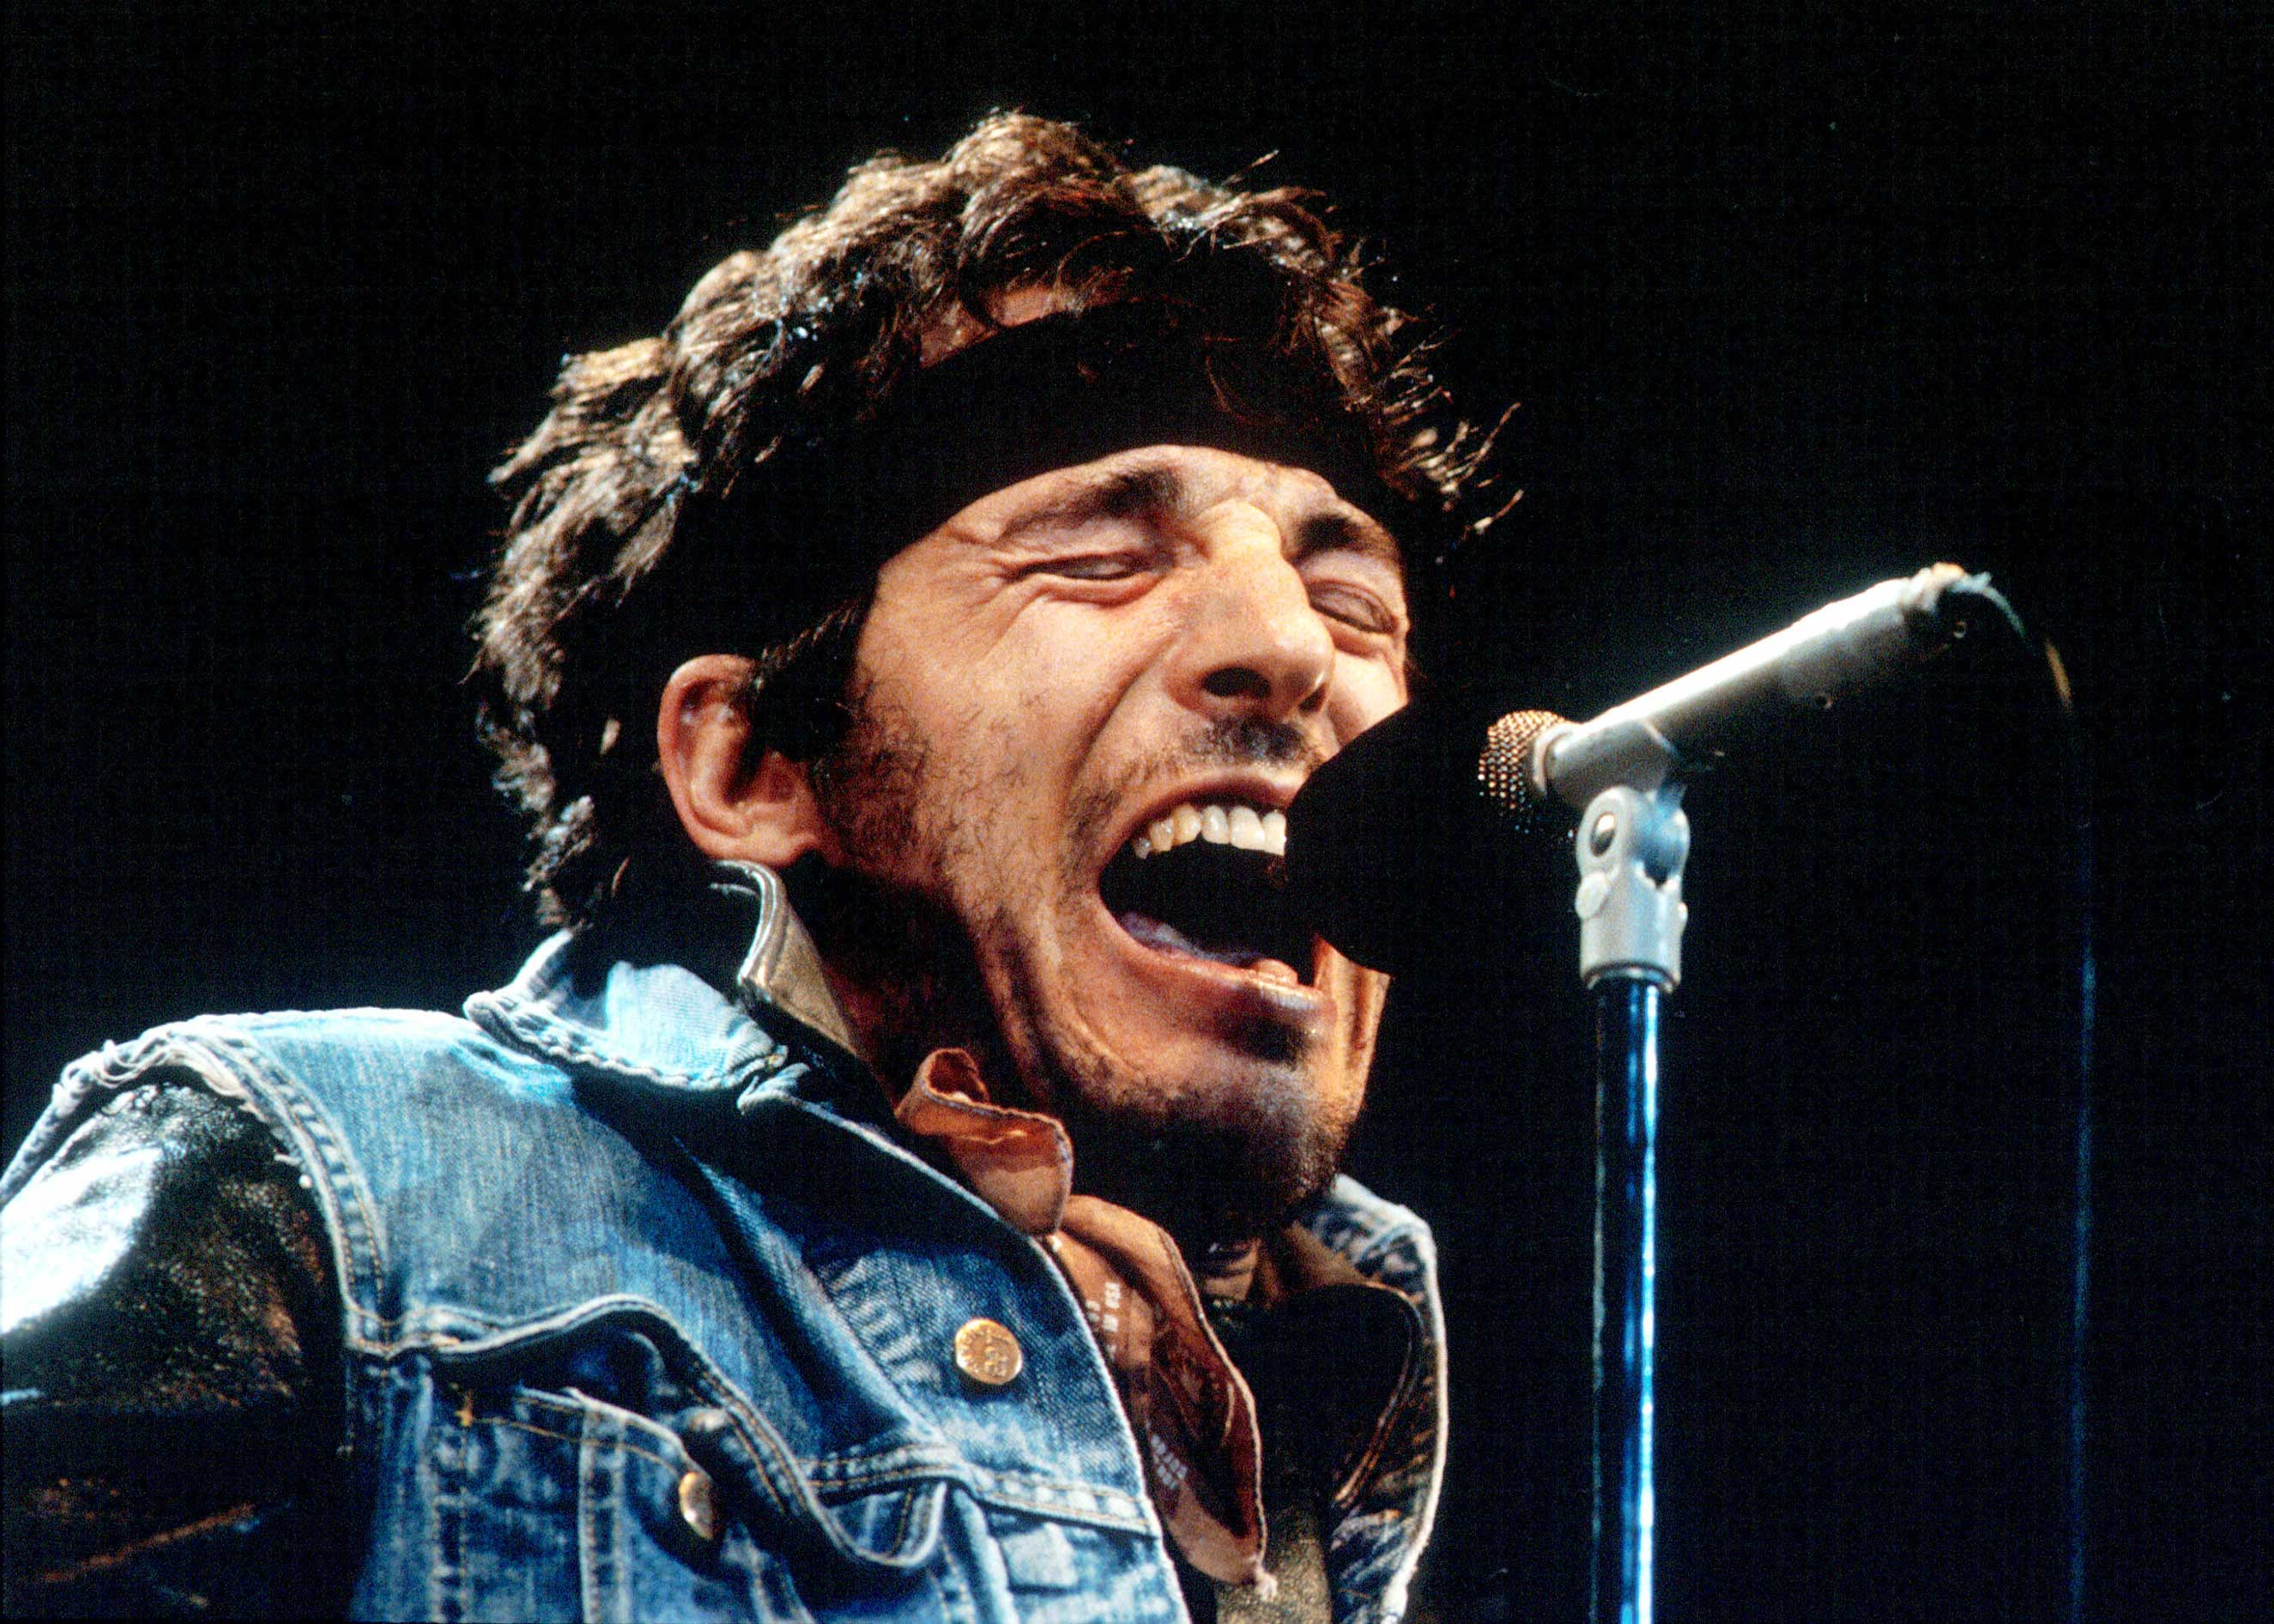 Bruce Springsteen performs during the last show of the 1985 'Born in the U.S.A. Tour'. in Los Angeles, California